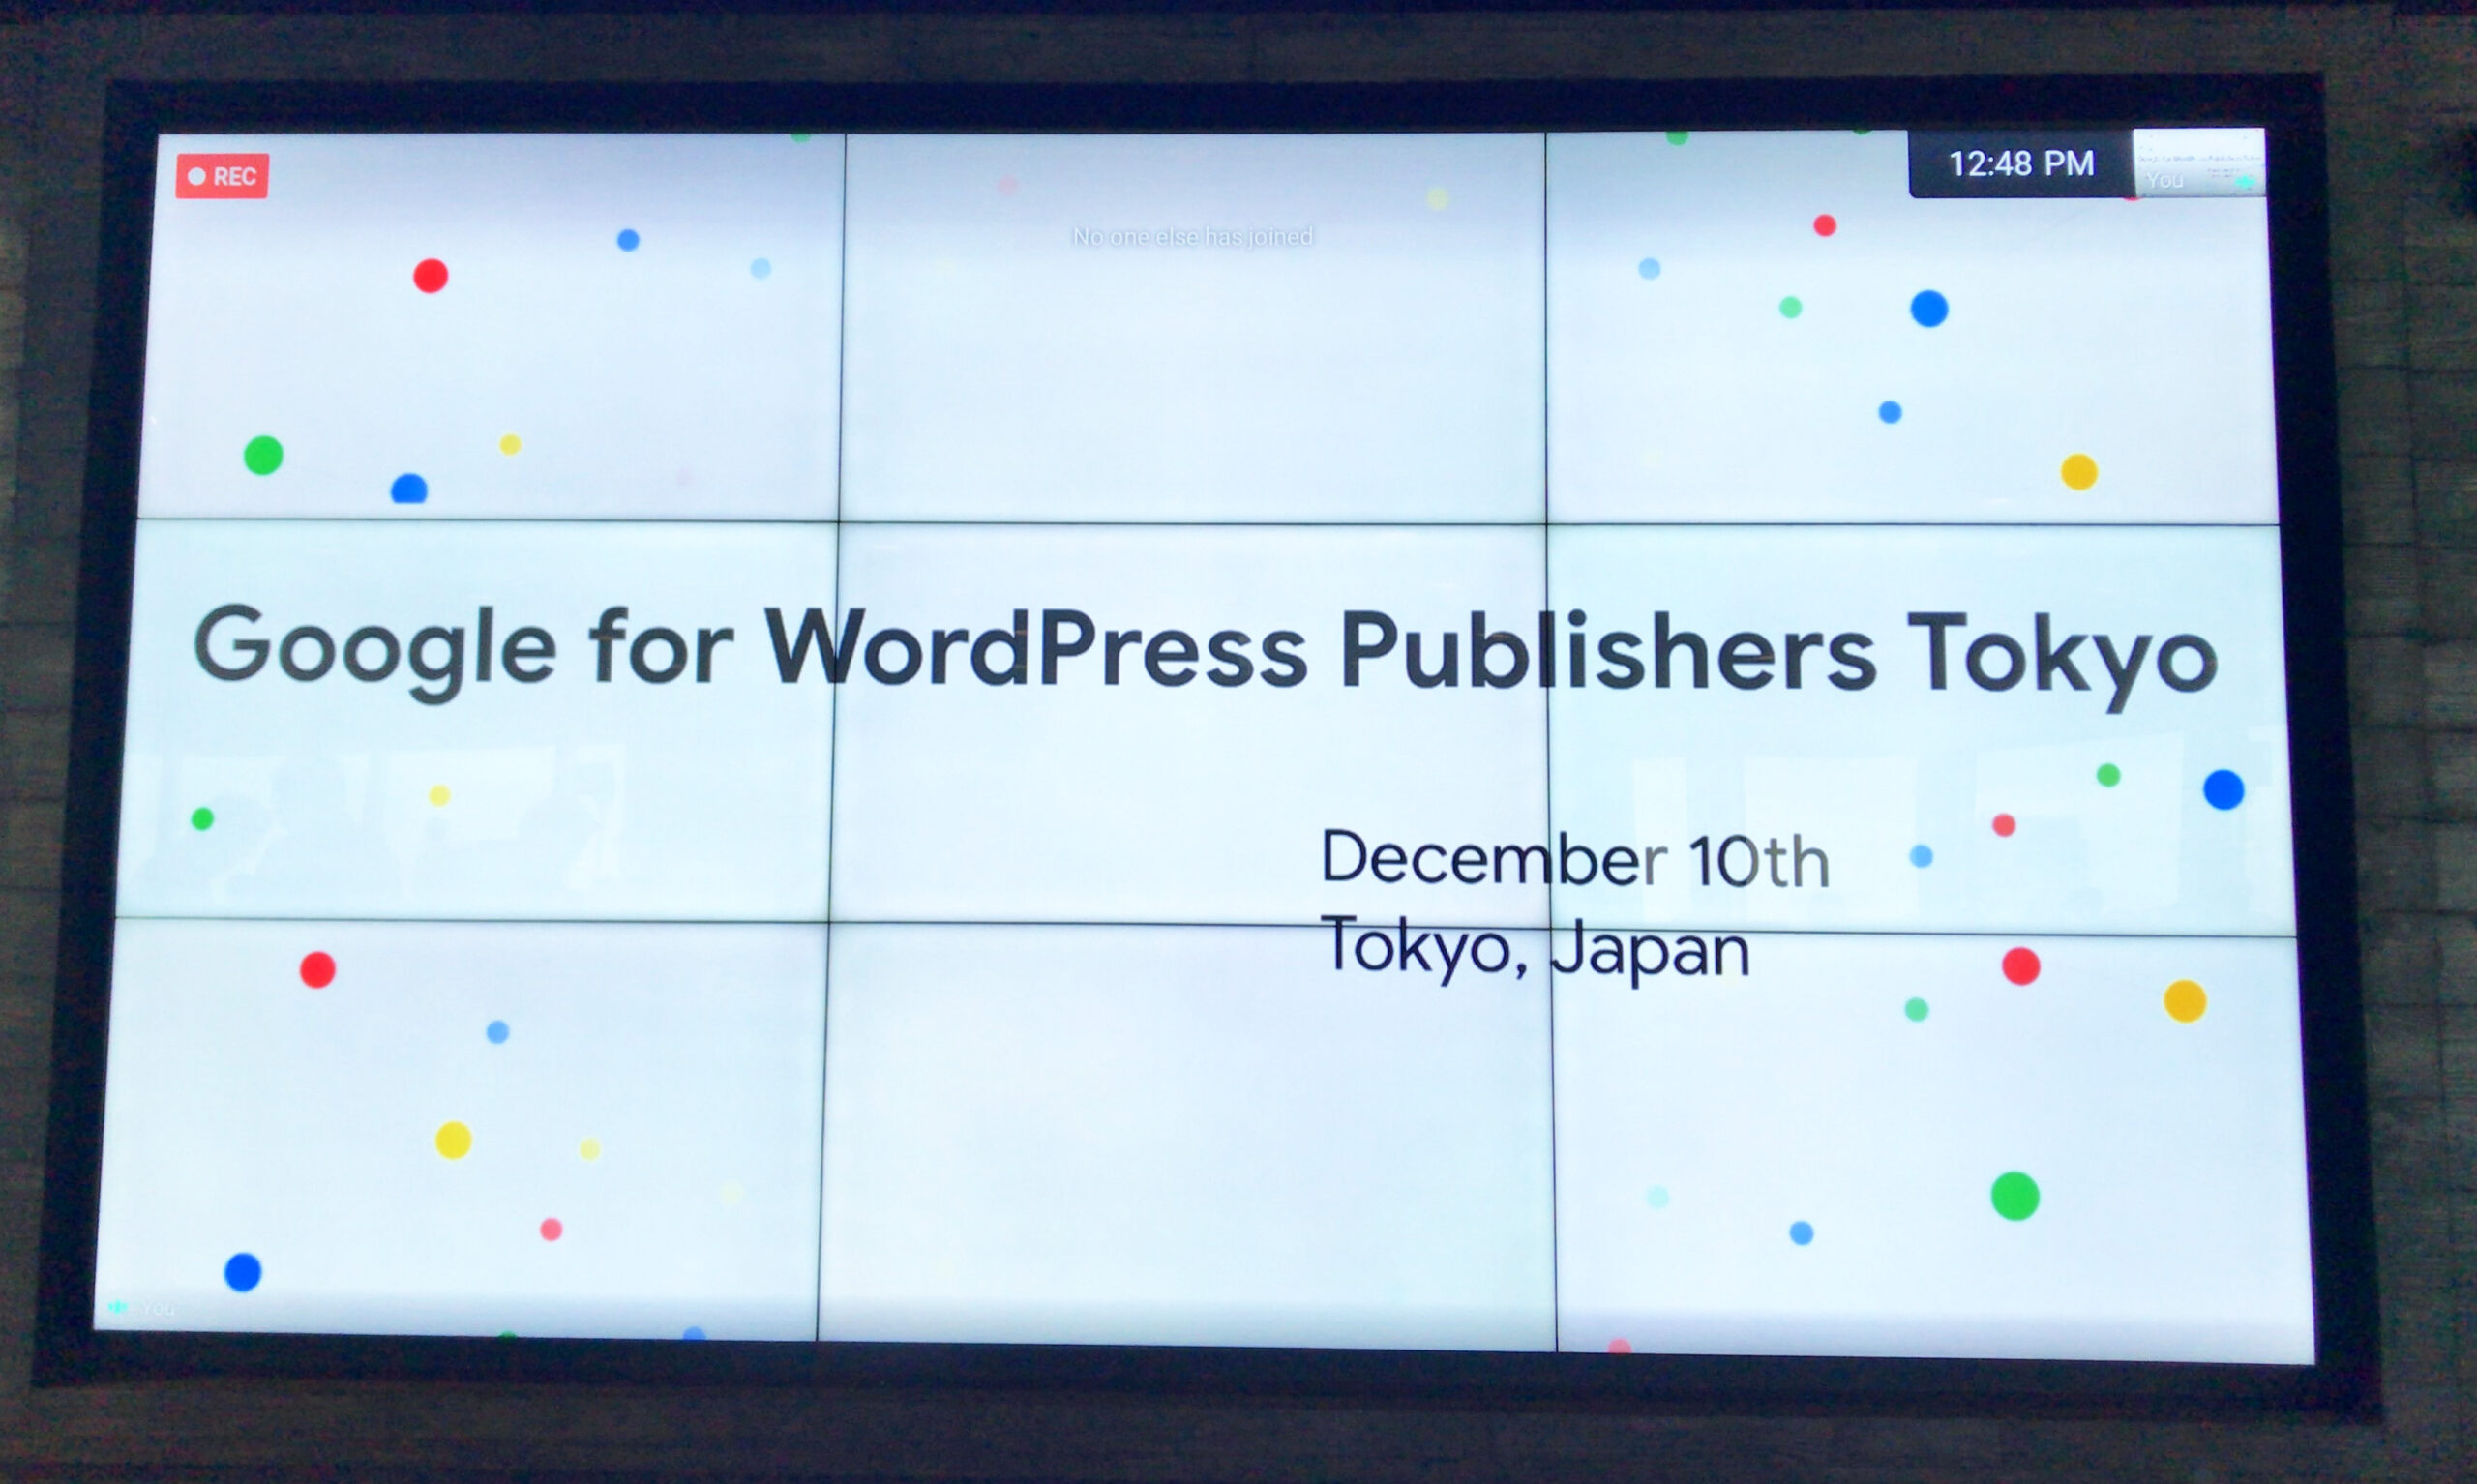 Google for WordPress Publisher Tokyo #GFWP 参加リポート